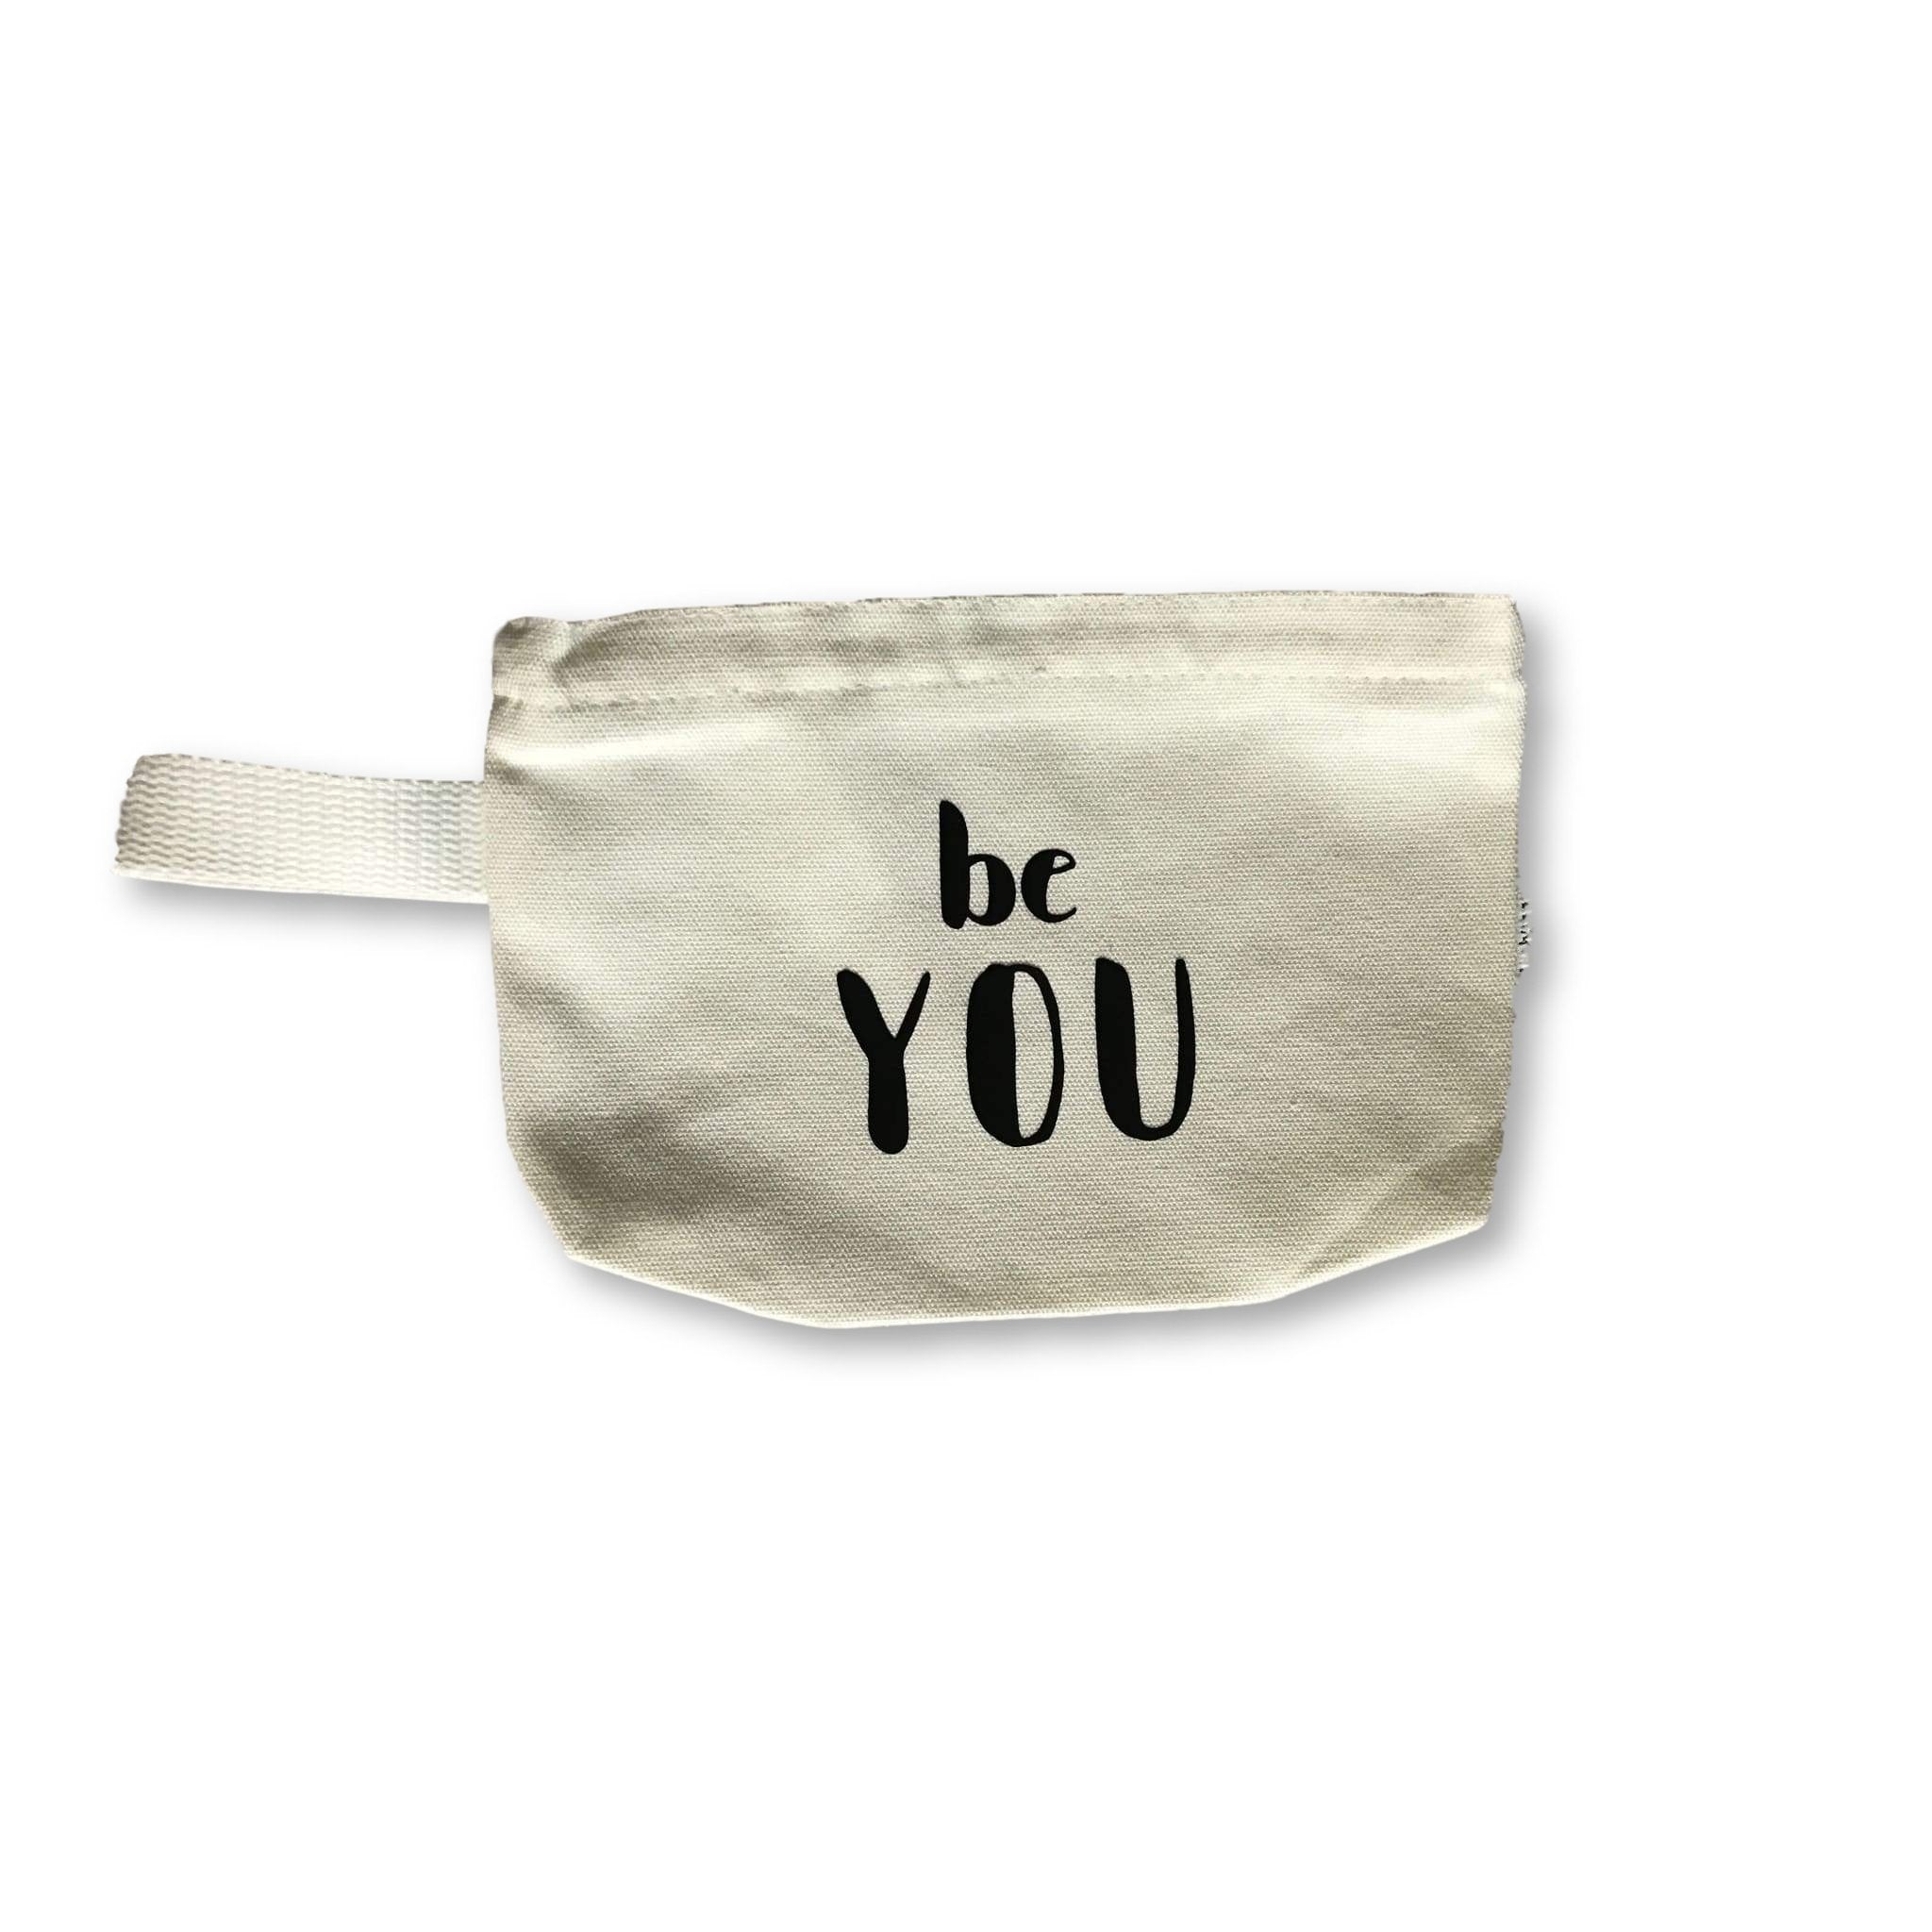 Be You - Michelle's Gift Studio